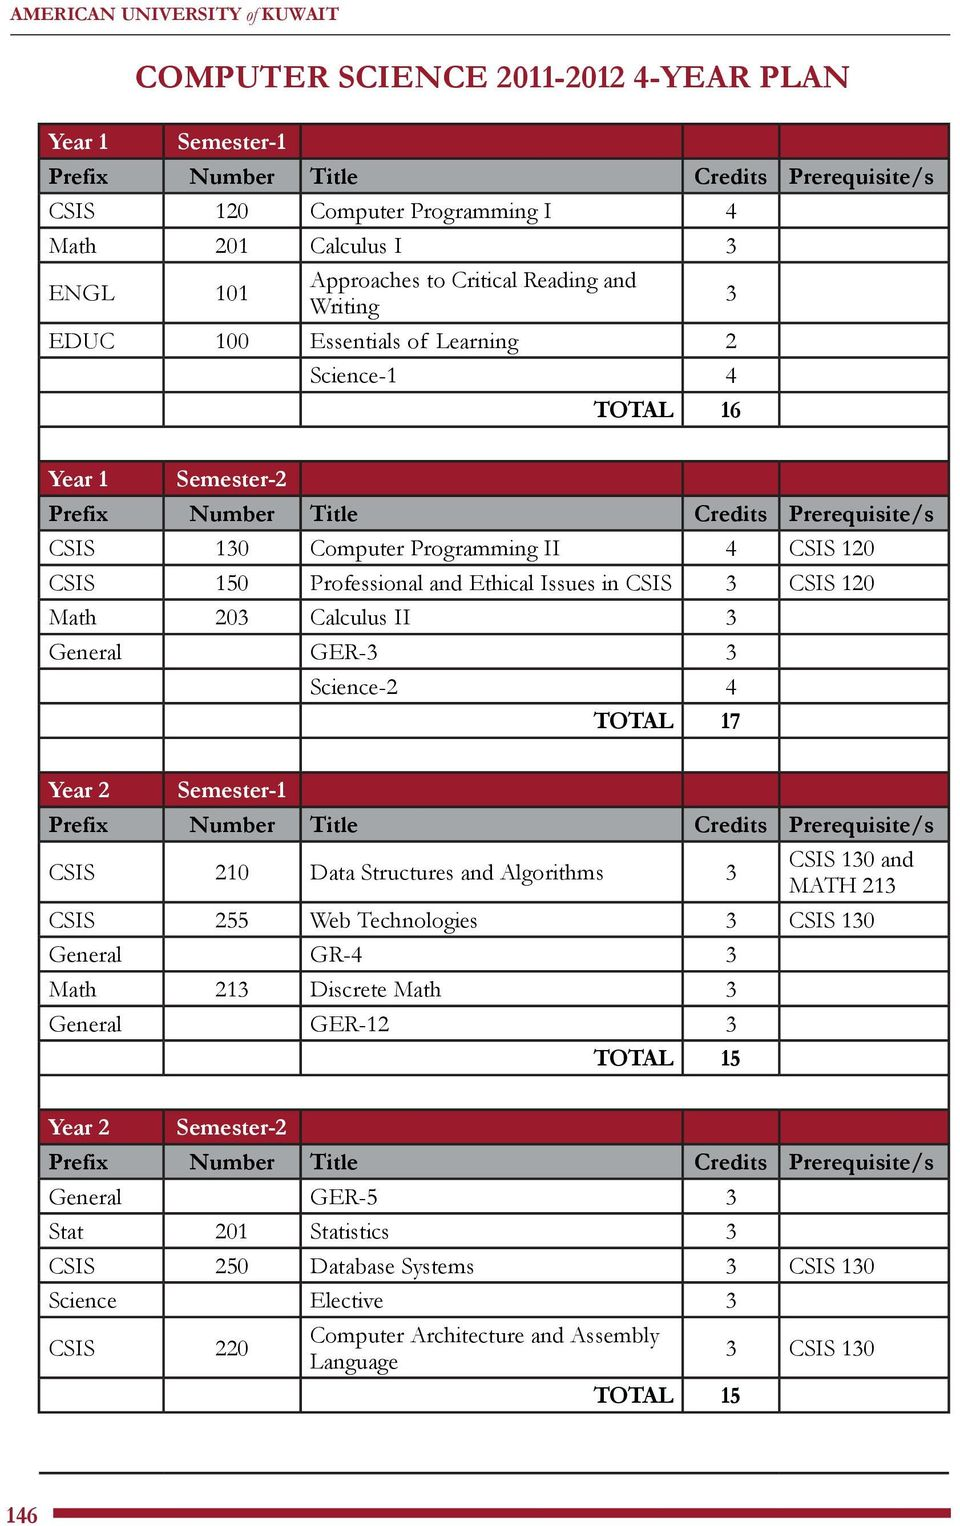 General GER-3 3 Science-2 4 TOTAL 17 Year 2 Semester-1 CSIS 210 Data Structures and Algorithms 3 CSIS 130 and MATH 213 CSIS 255 Web Technologies 3 CSIS 130 General GR-4 3 Math 213 Discrete Math 3